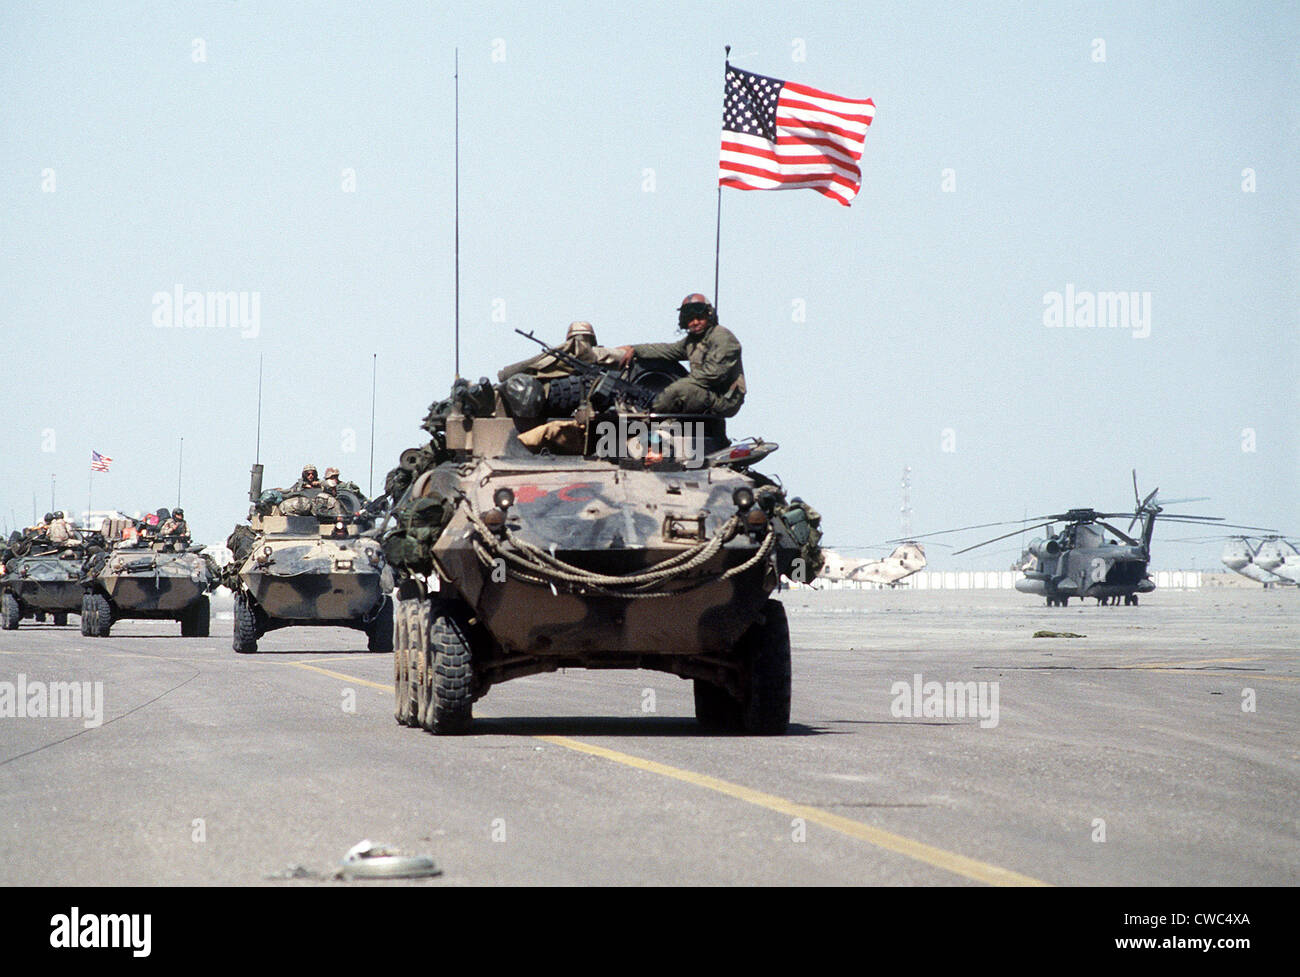 US Marines roll into Kuwait International Airport in light armored vehicles after the retreat of Iraqi forces during - Stock Image